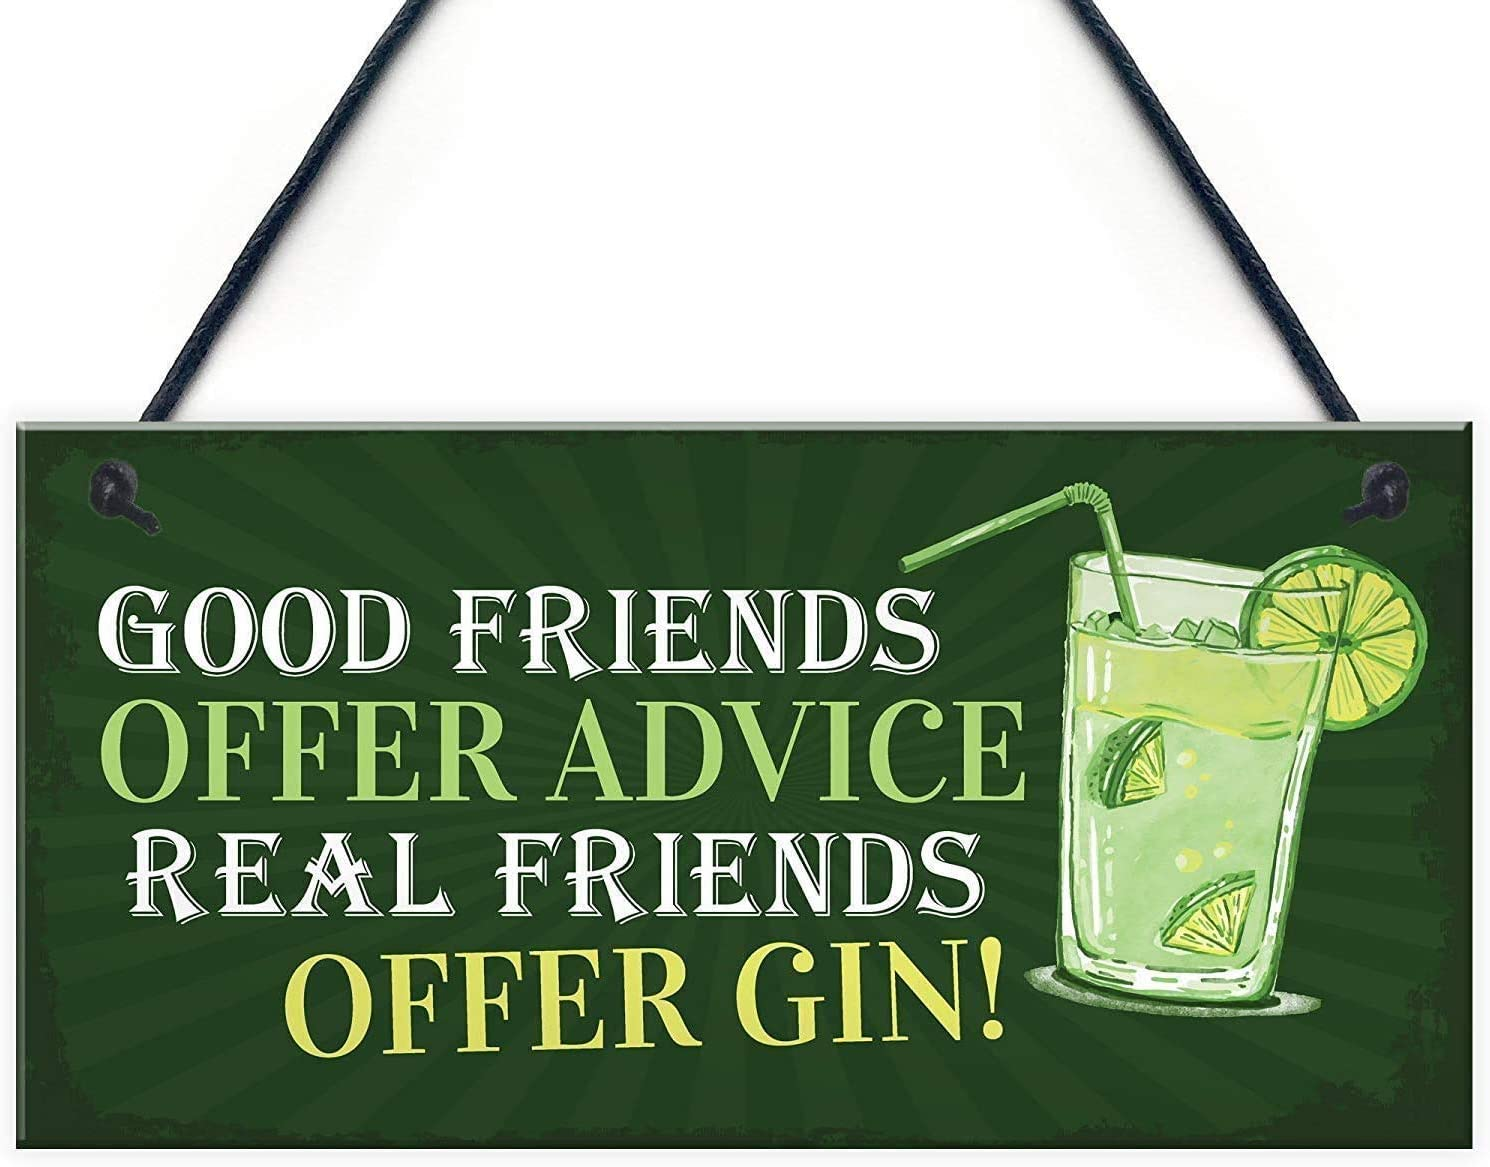 INNAPER Wooden Sign with Quotes Good Friends Offer Advice Real Friends Offer Gin Garden Plaque Shed Home Bar Pub Alcohol Kitchen Hanging Wall Plaque Gift 12x6(49BW2013)